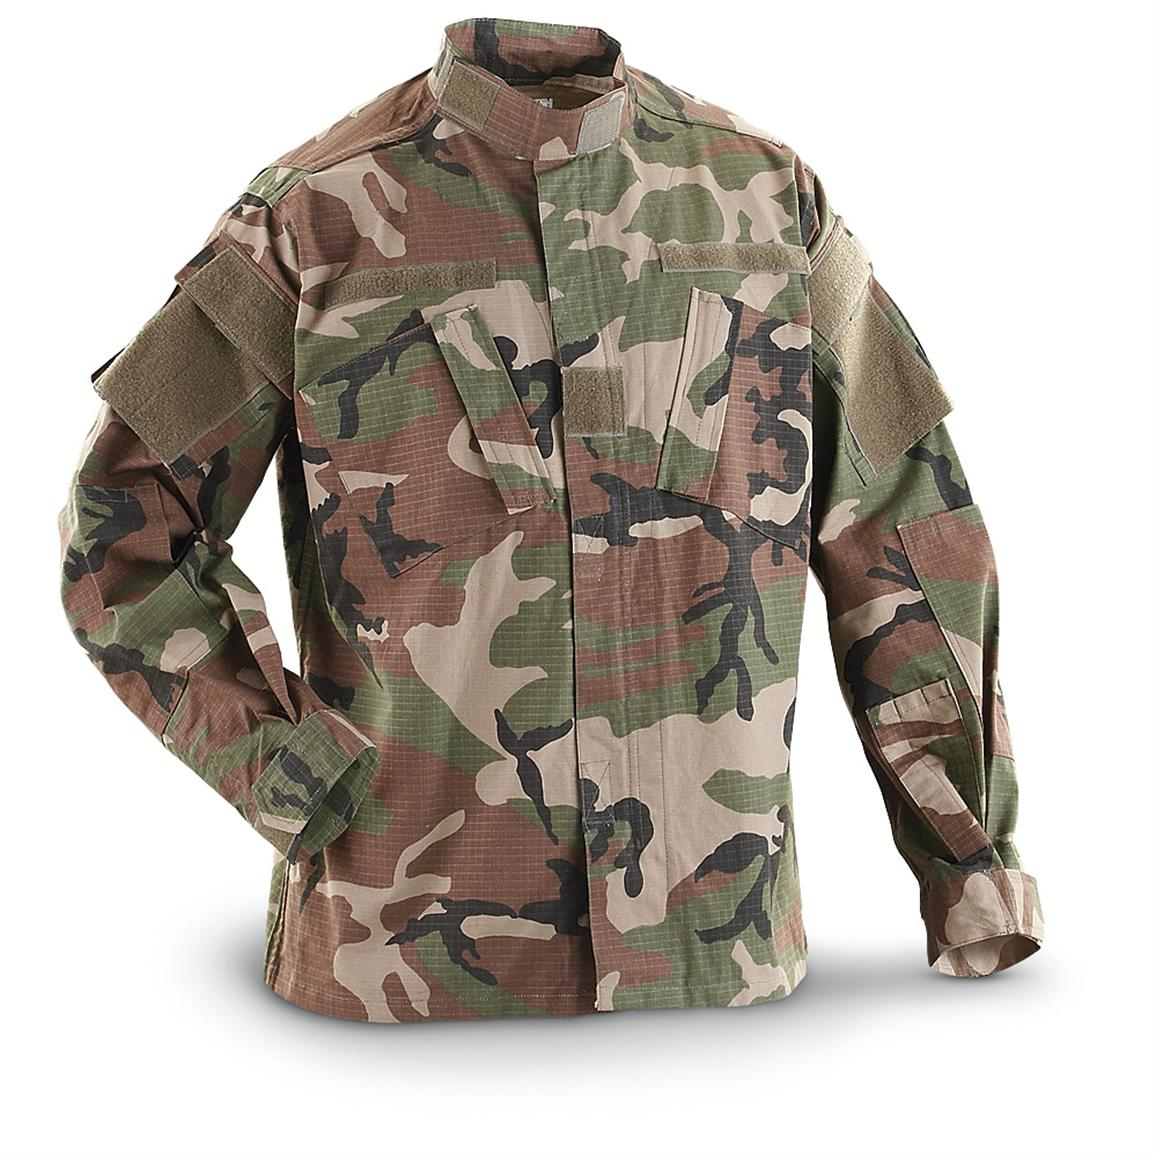 Mil-Tec® Military-style PCRS Jacket, Woodland Camo